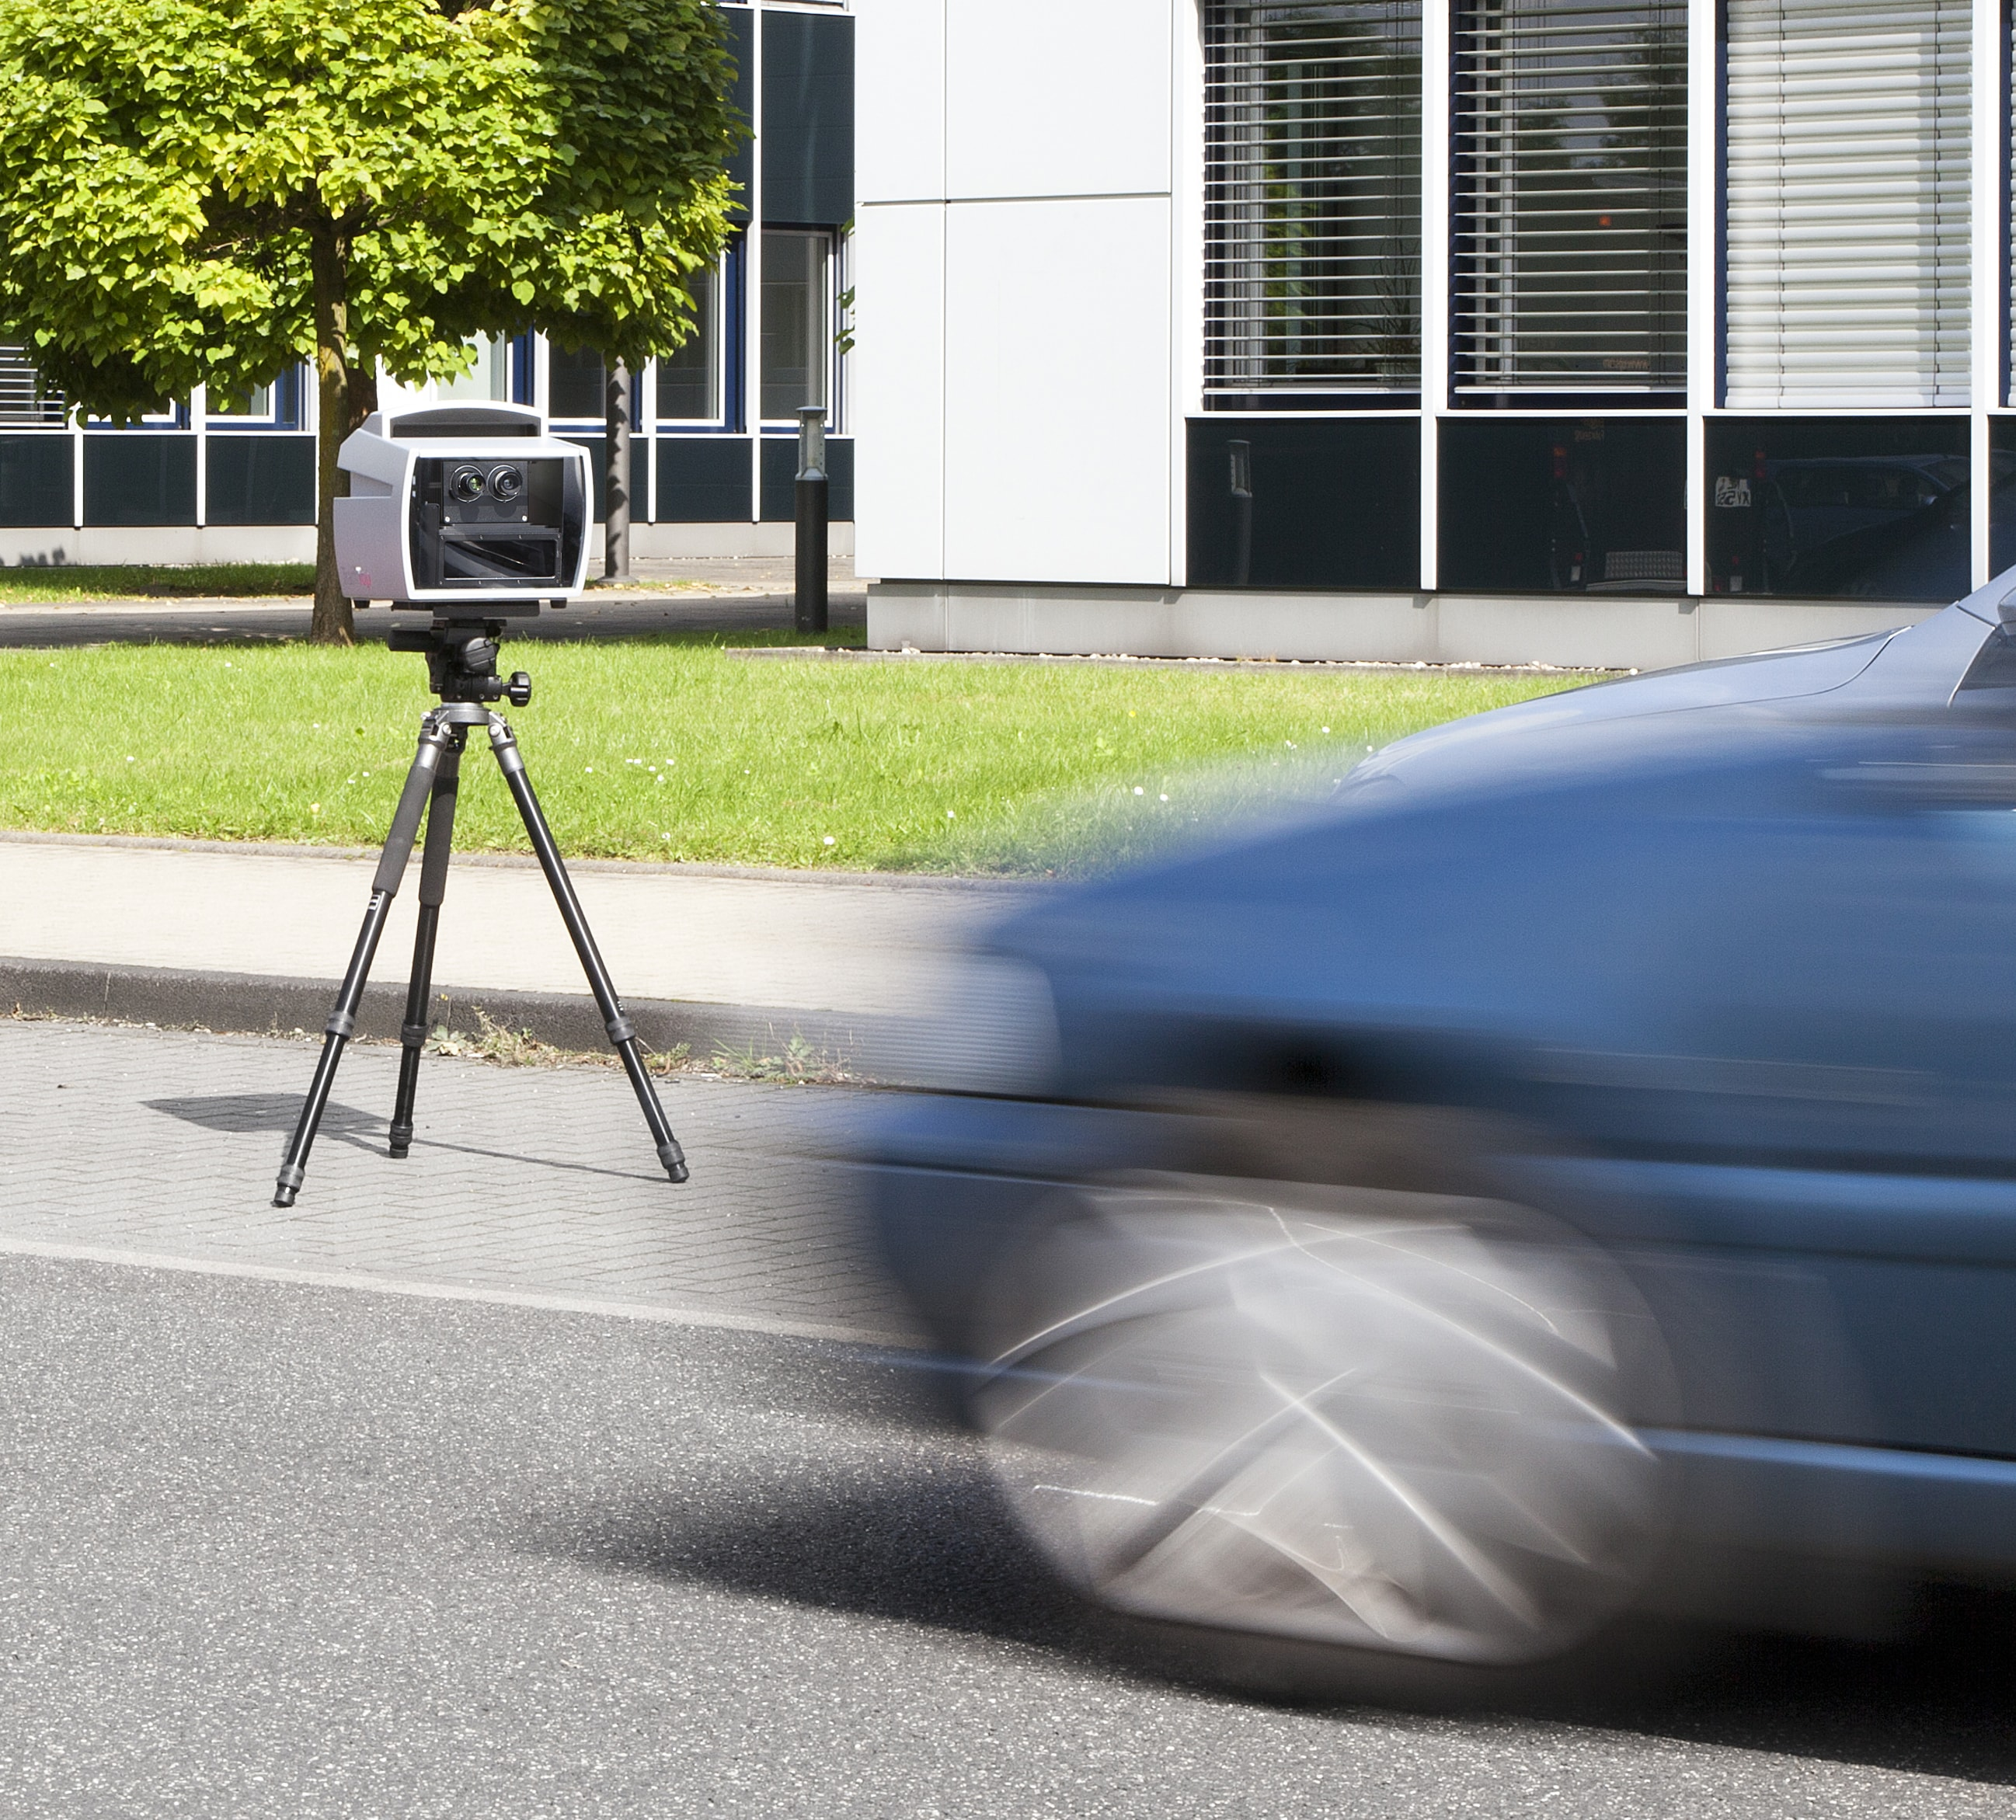 Mobile speed enforcement